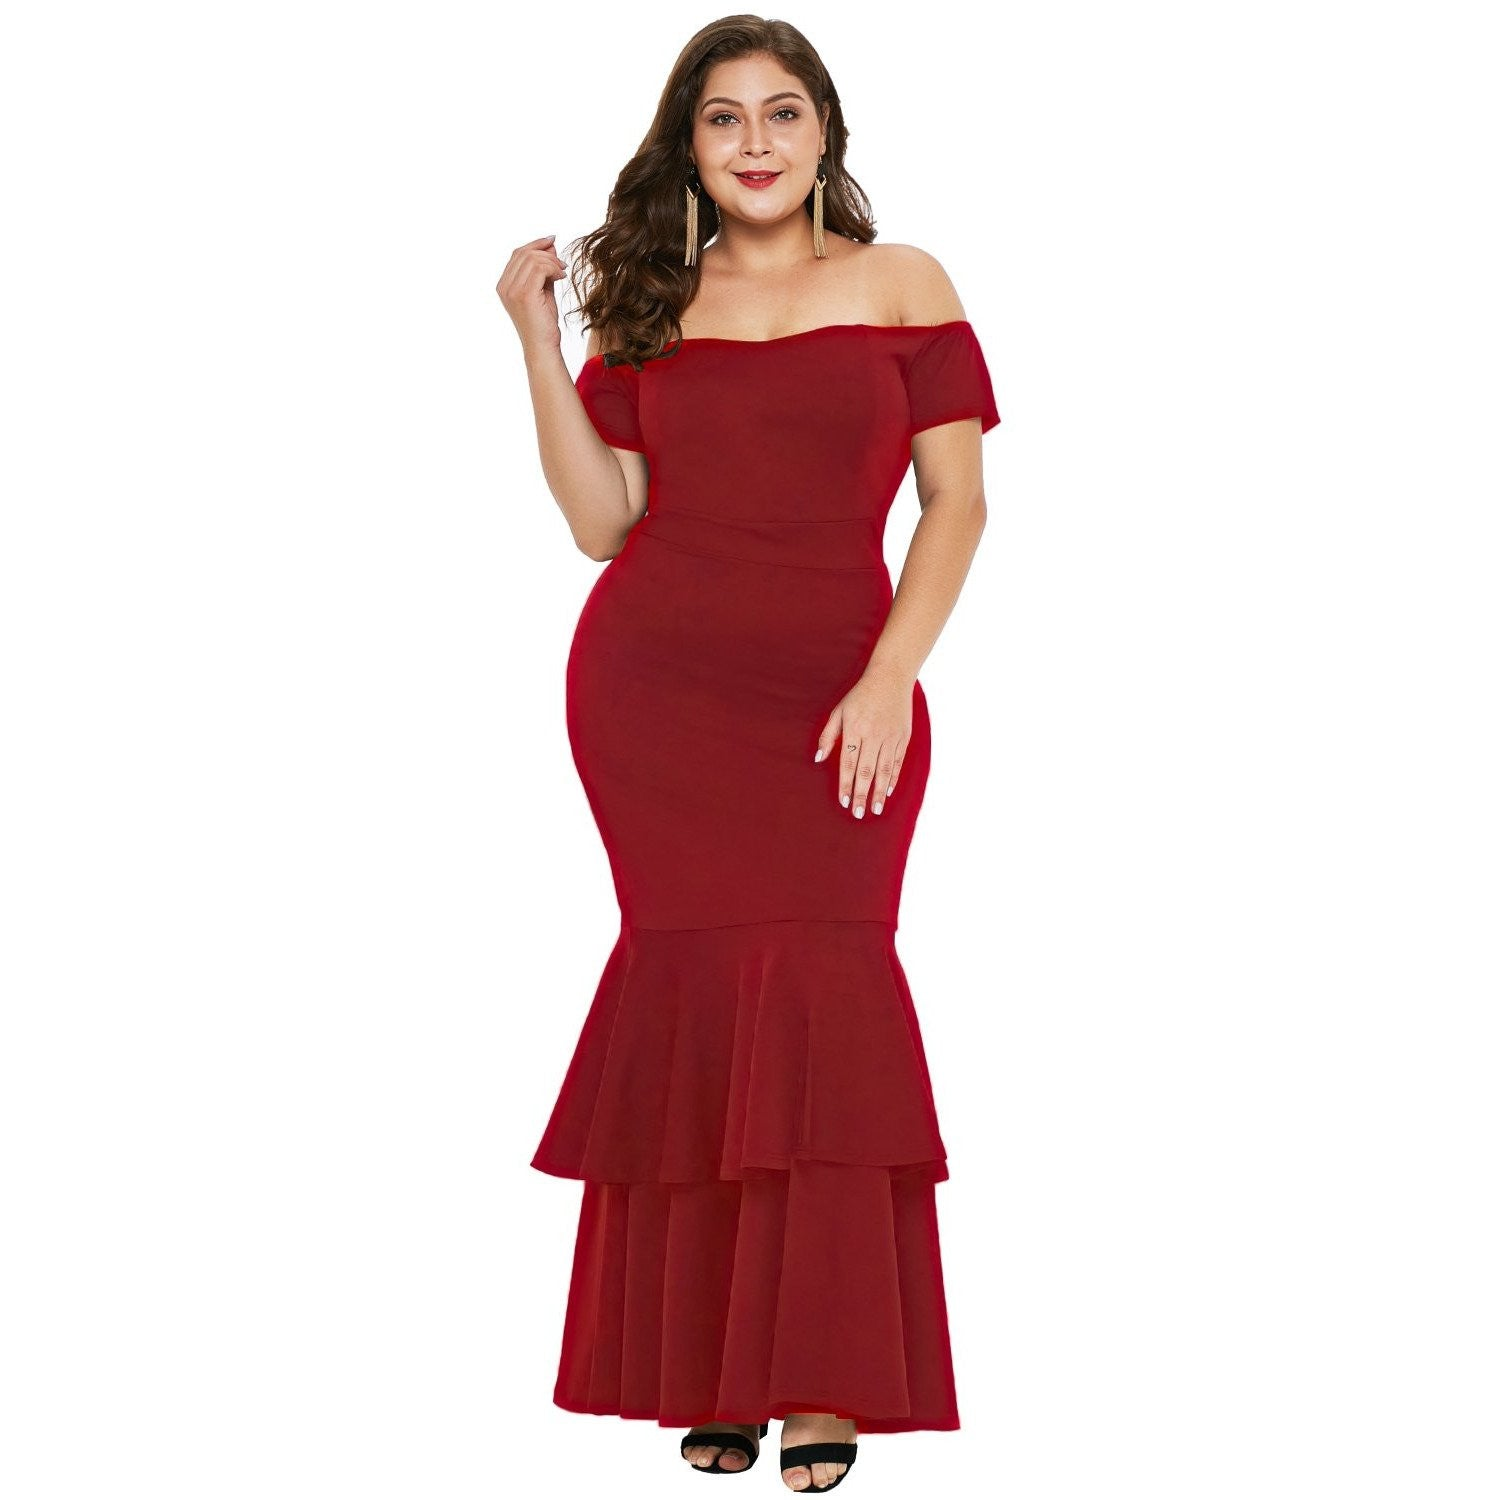 KELLIPS Red Plus Size Mermaid Maxi Dress